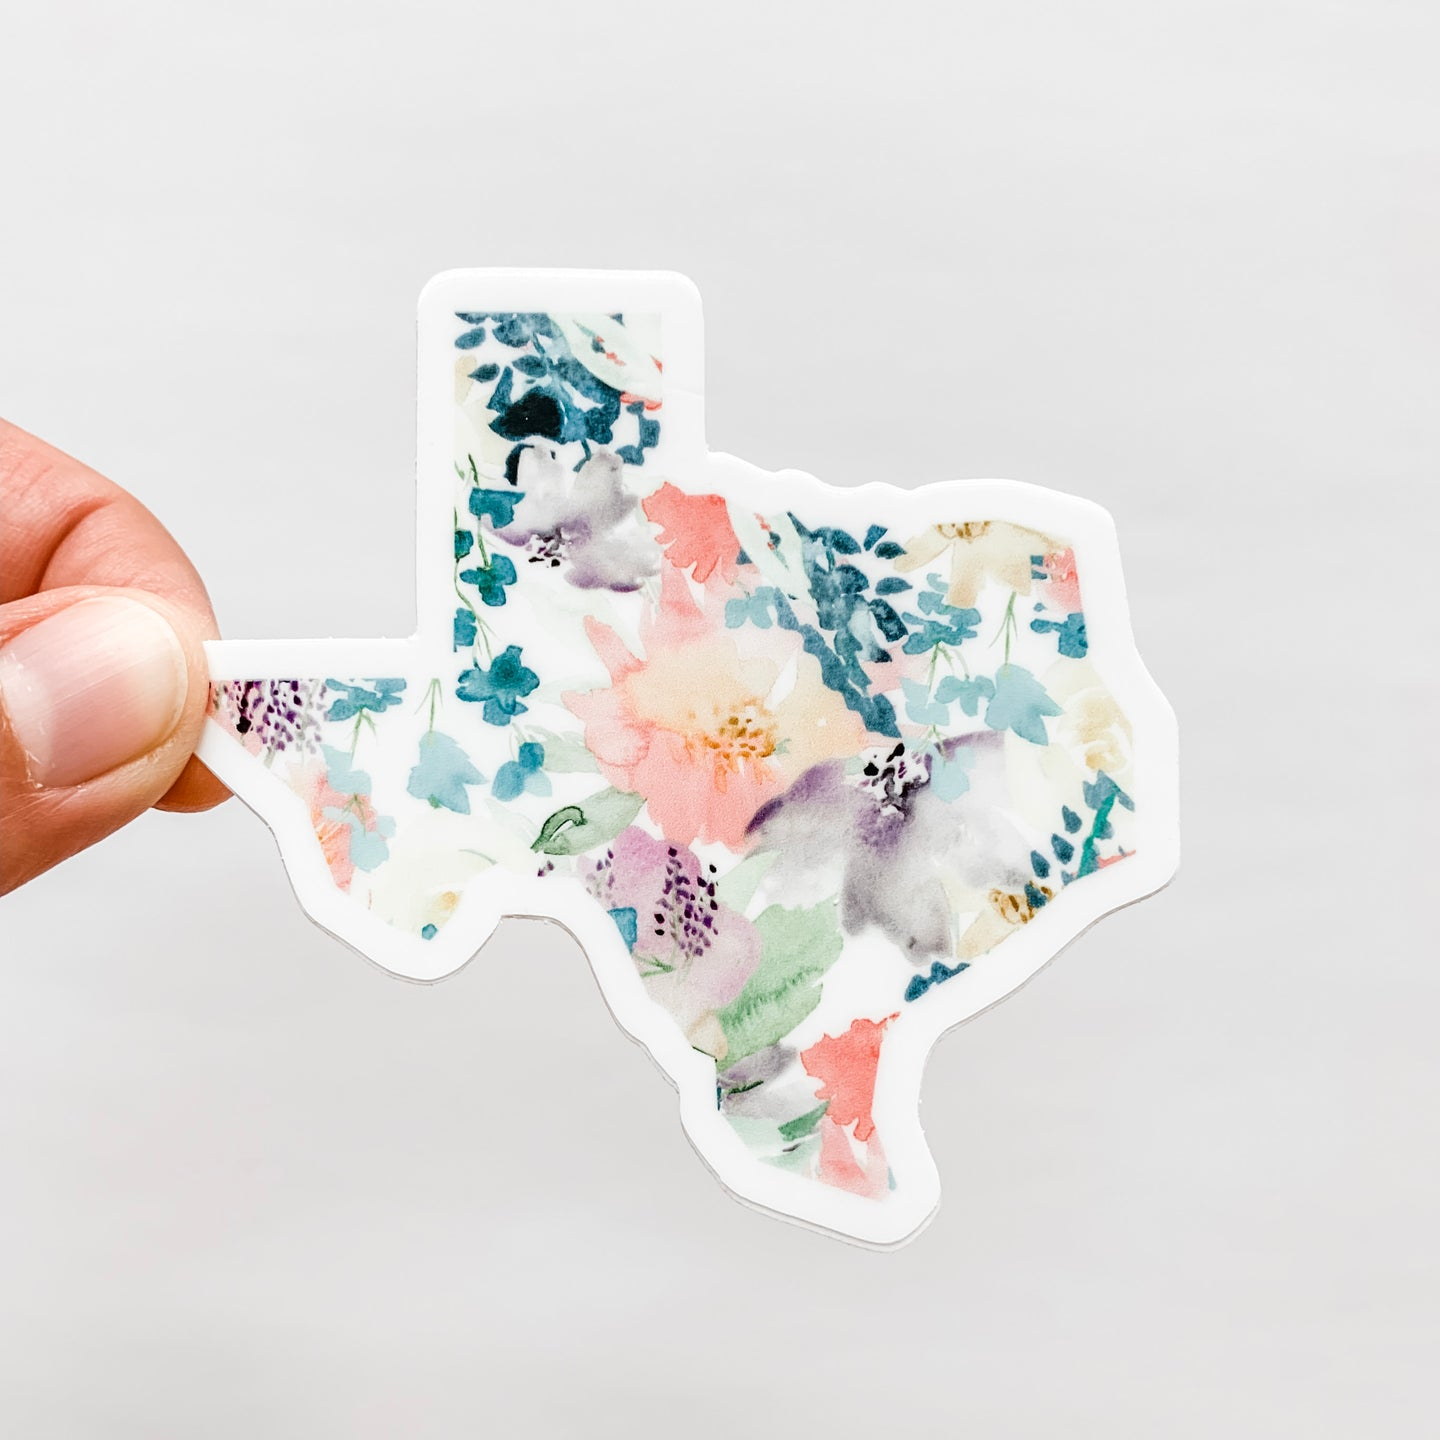 Texas State Floral Soft Sticker Decal